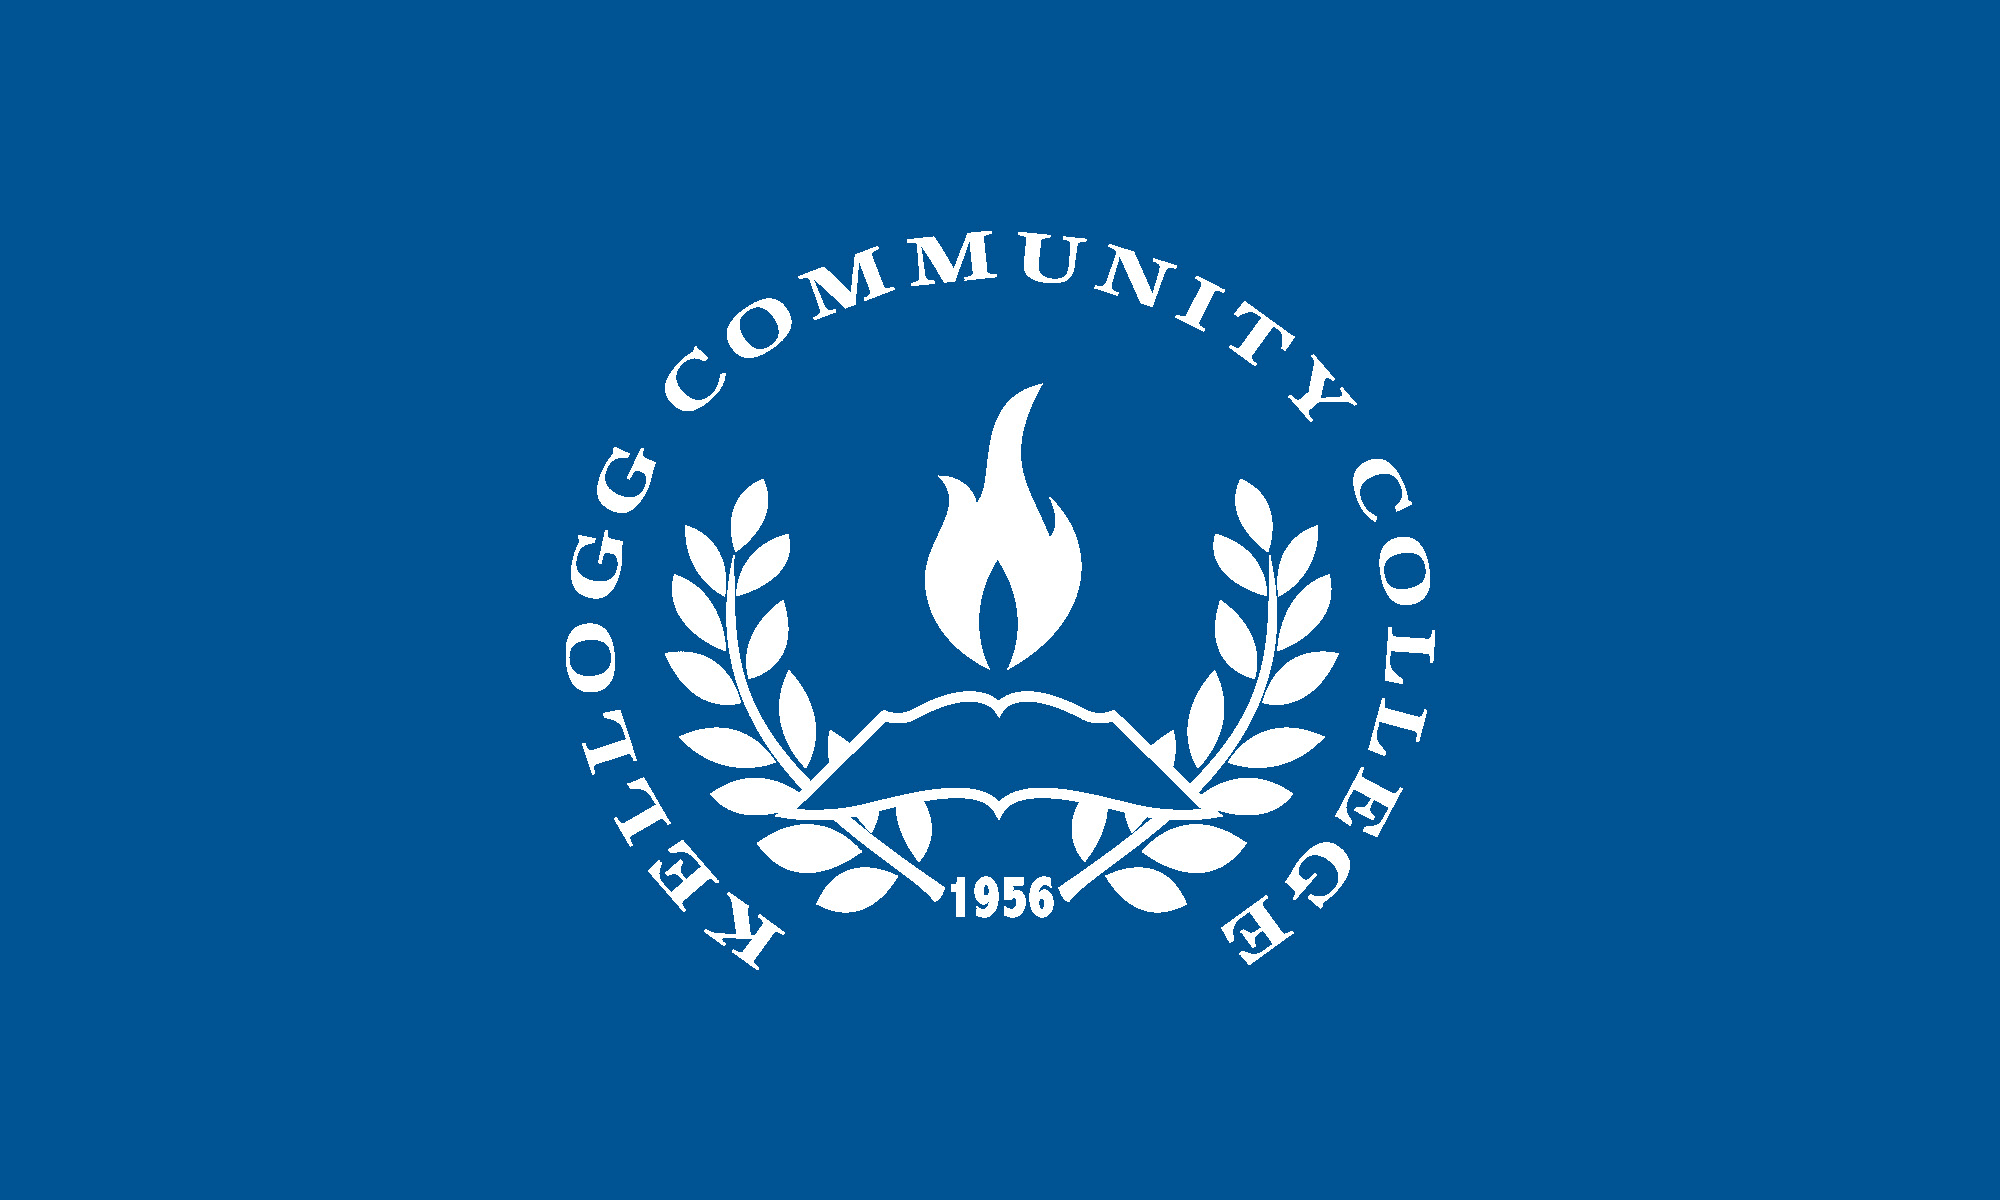 KCC's official seal in white on a blue background.